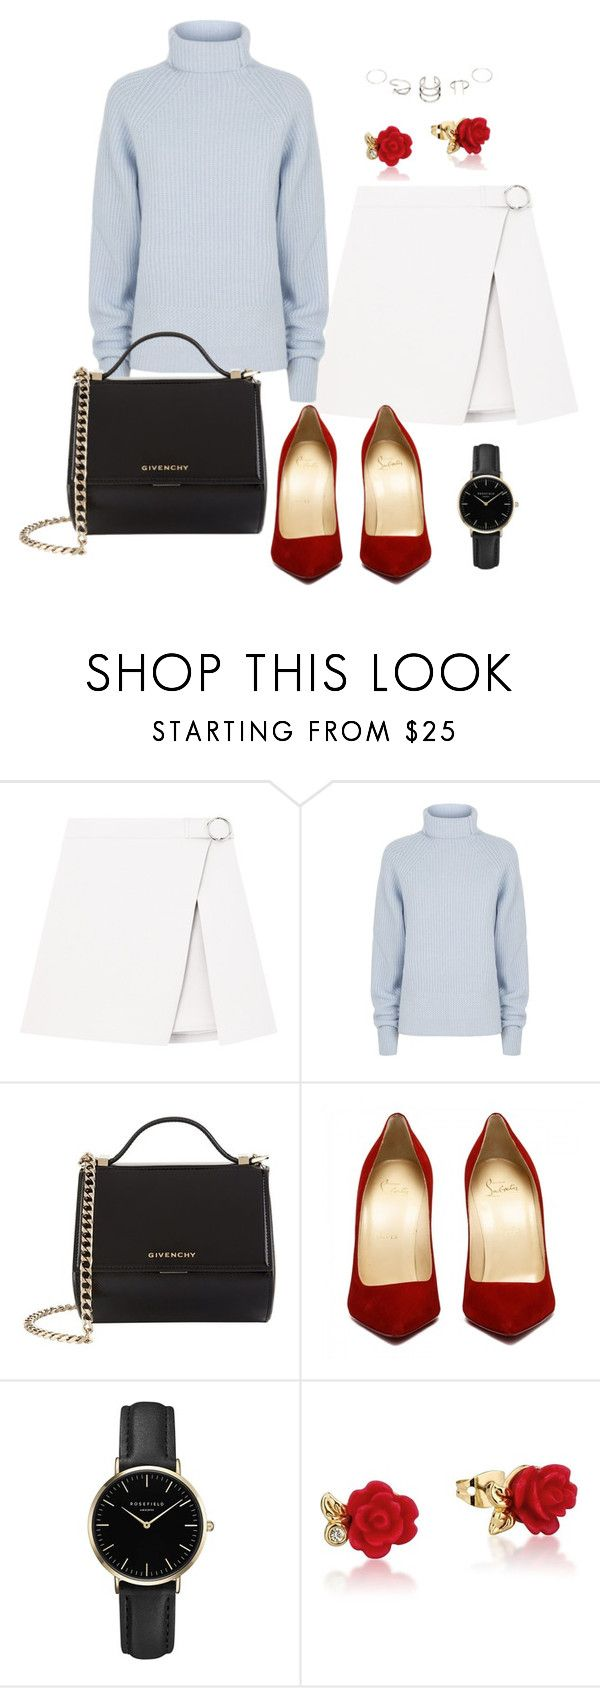 Untitled #51 by nicole-perestrelo21 on Polyvore featuring Maje, Givenchy, ROSEFIELD, Disney and RedShoes